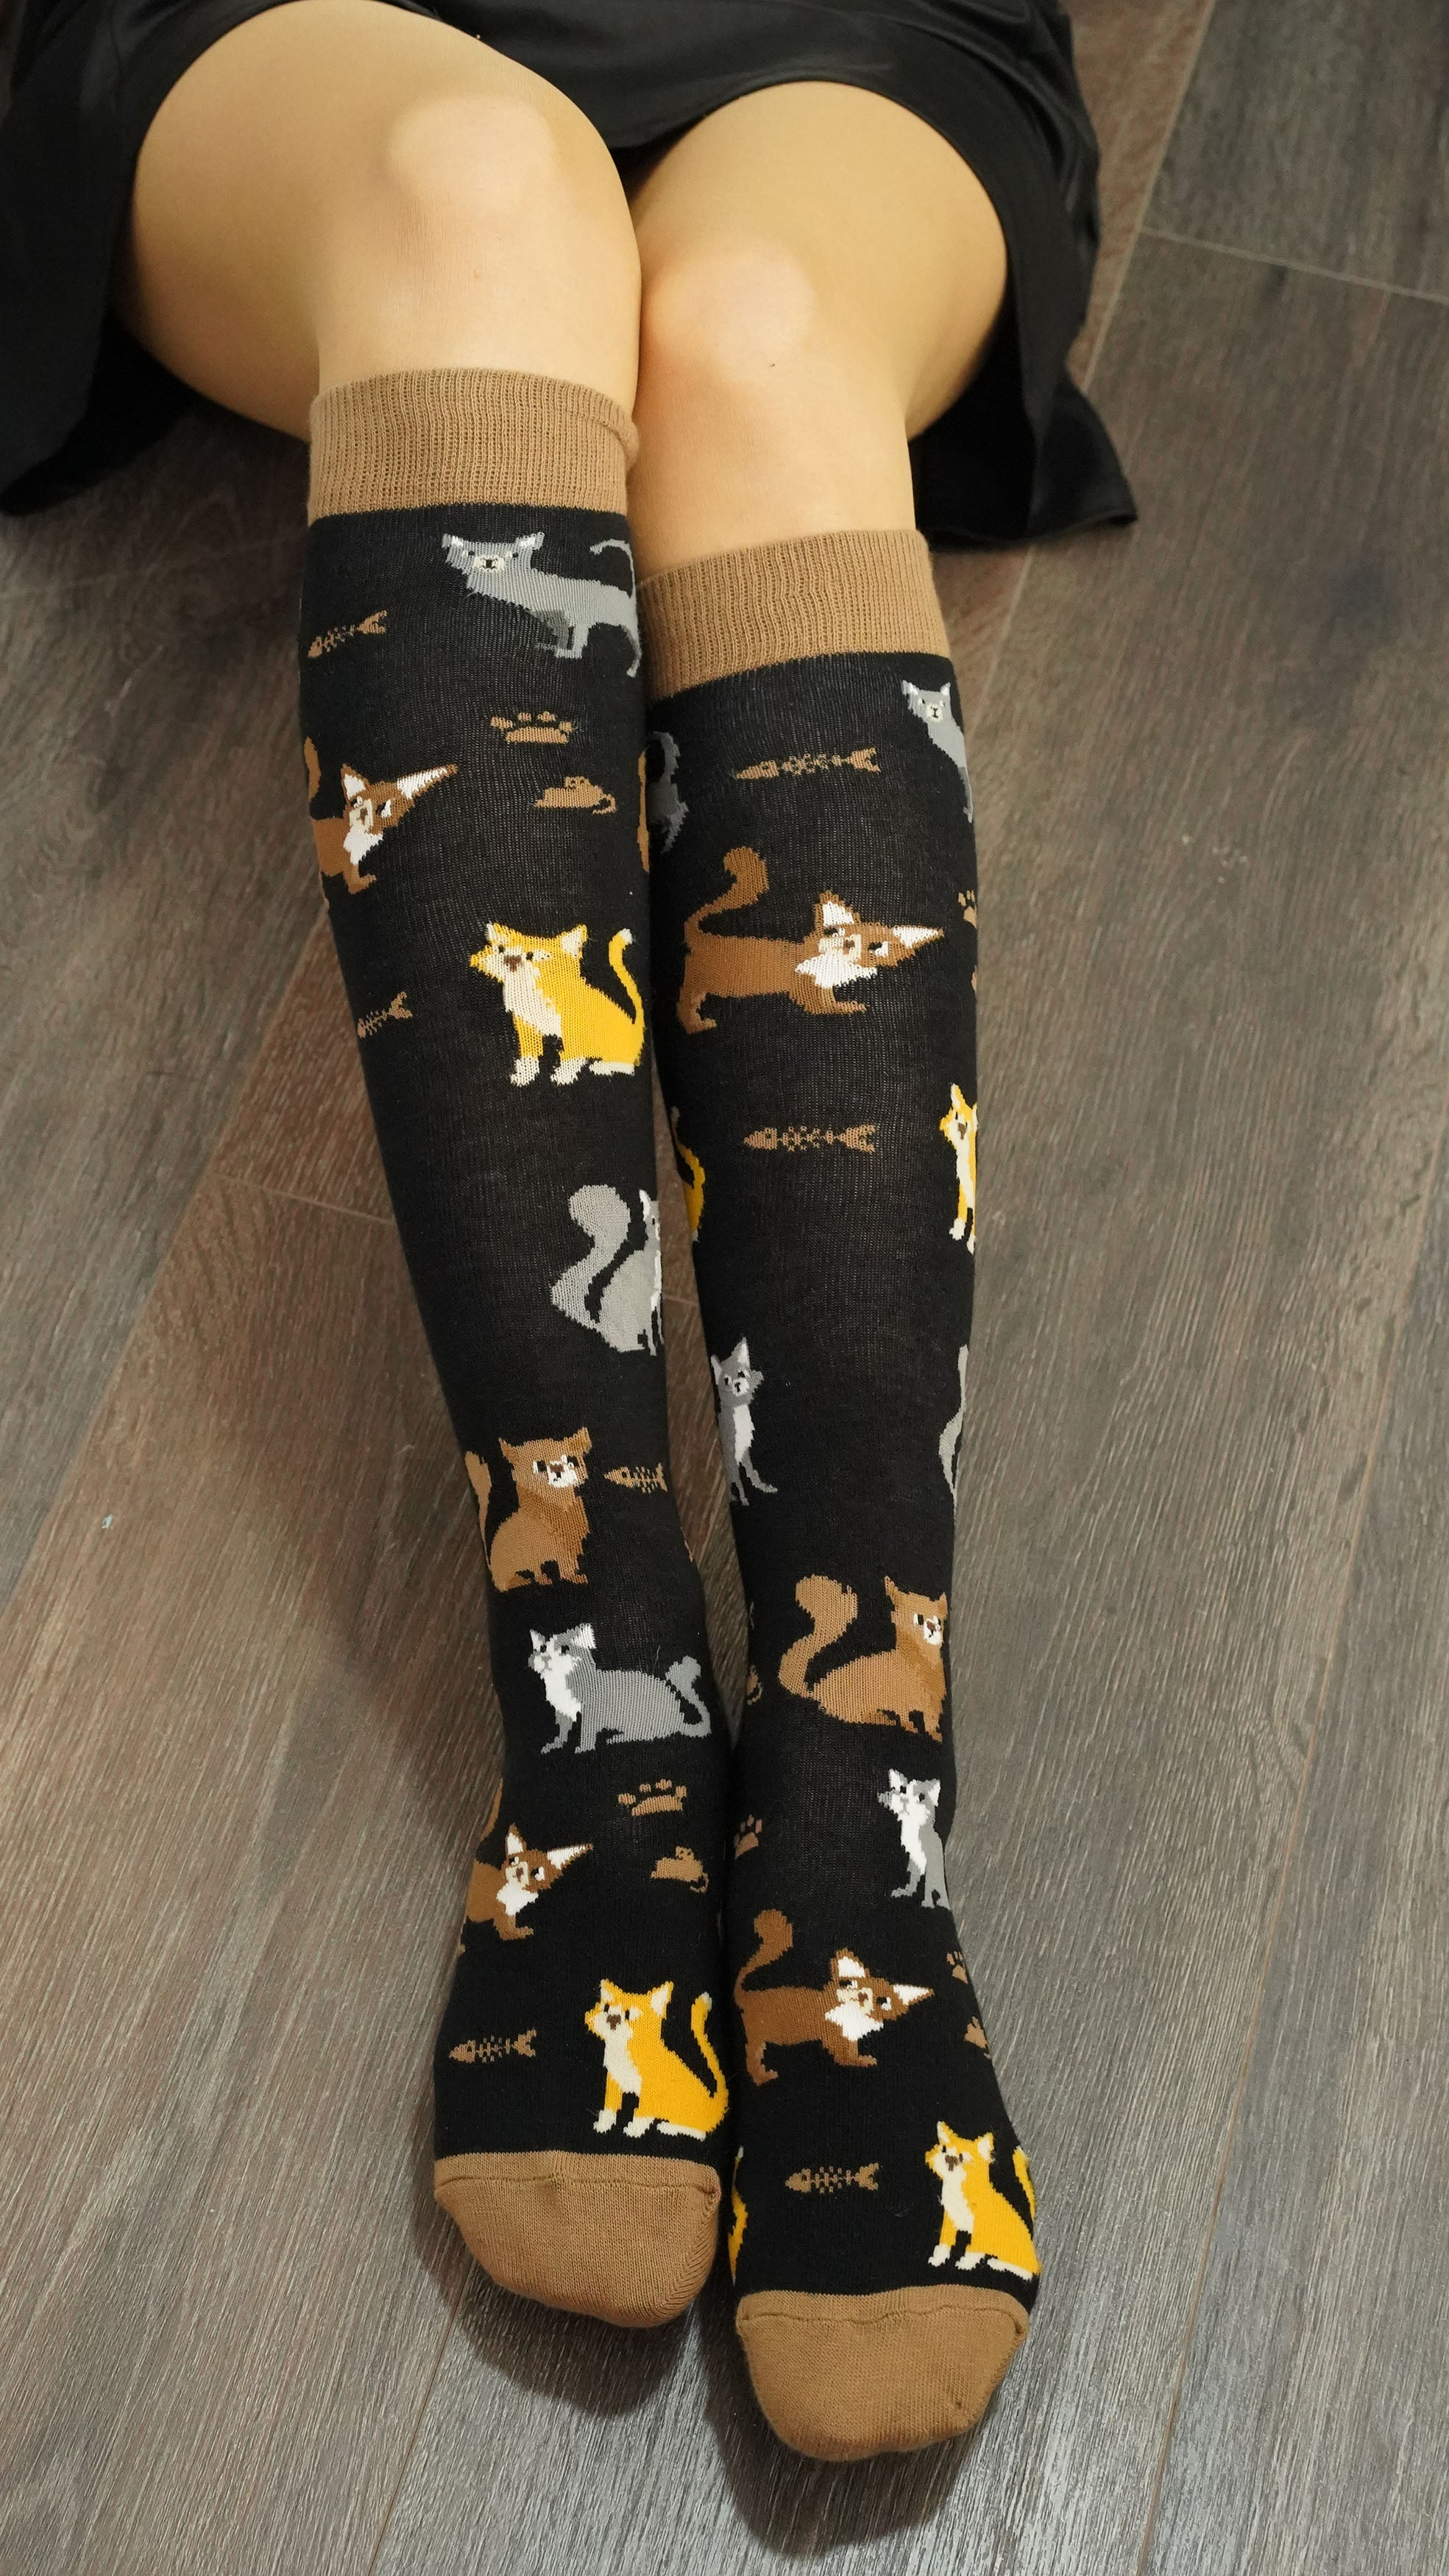 Women's Cute Cats Knee High Socks Set